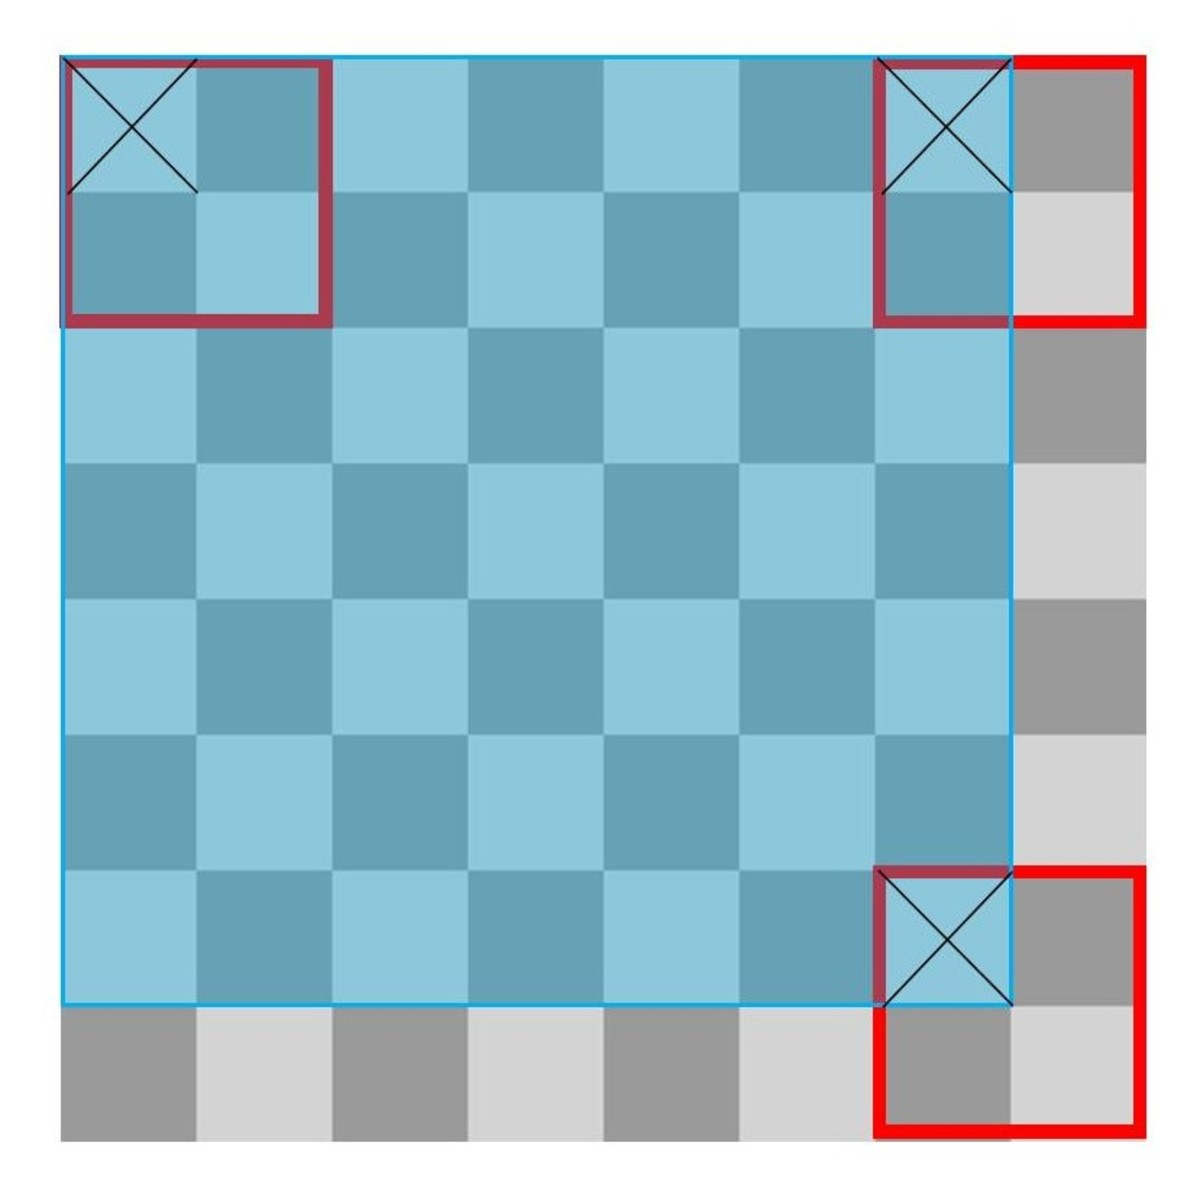 A Chessboard With 2x2 Squares